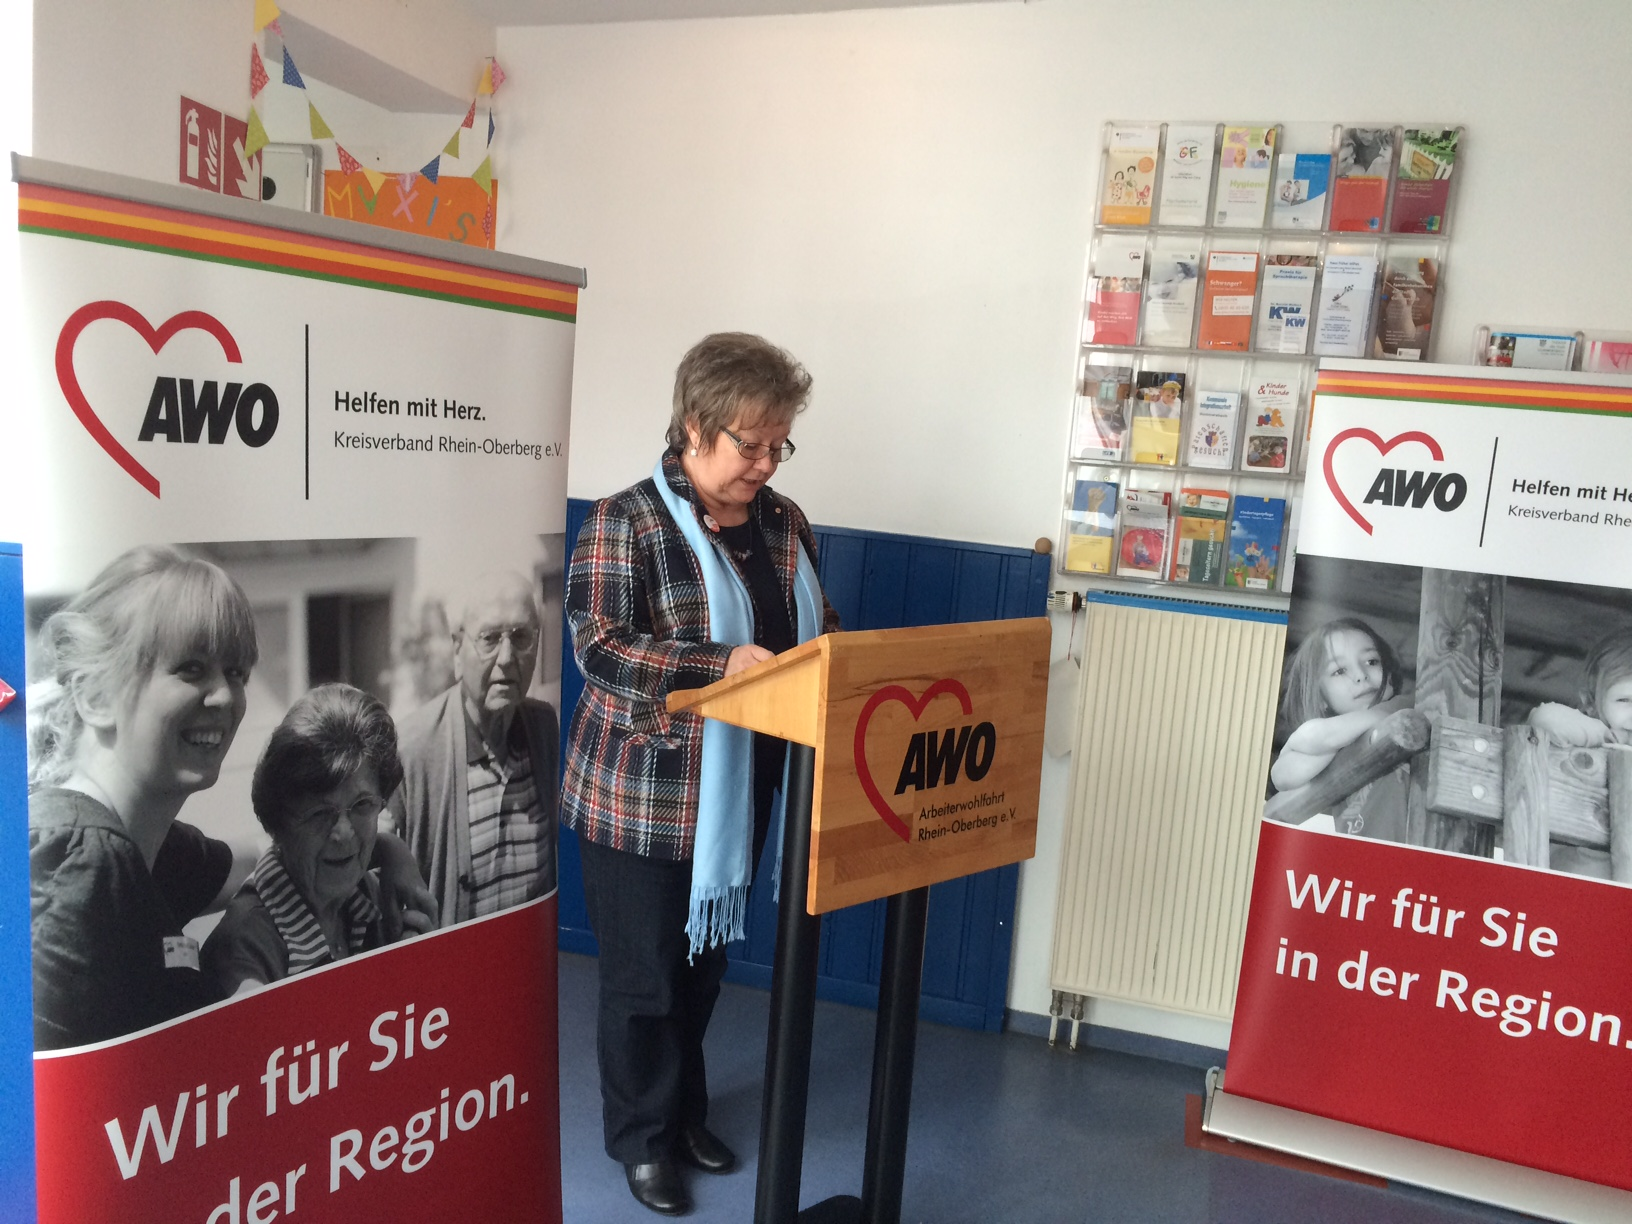 awo familienzentrum burscheid and relationship